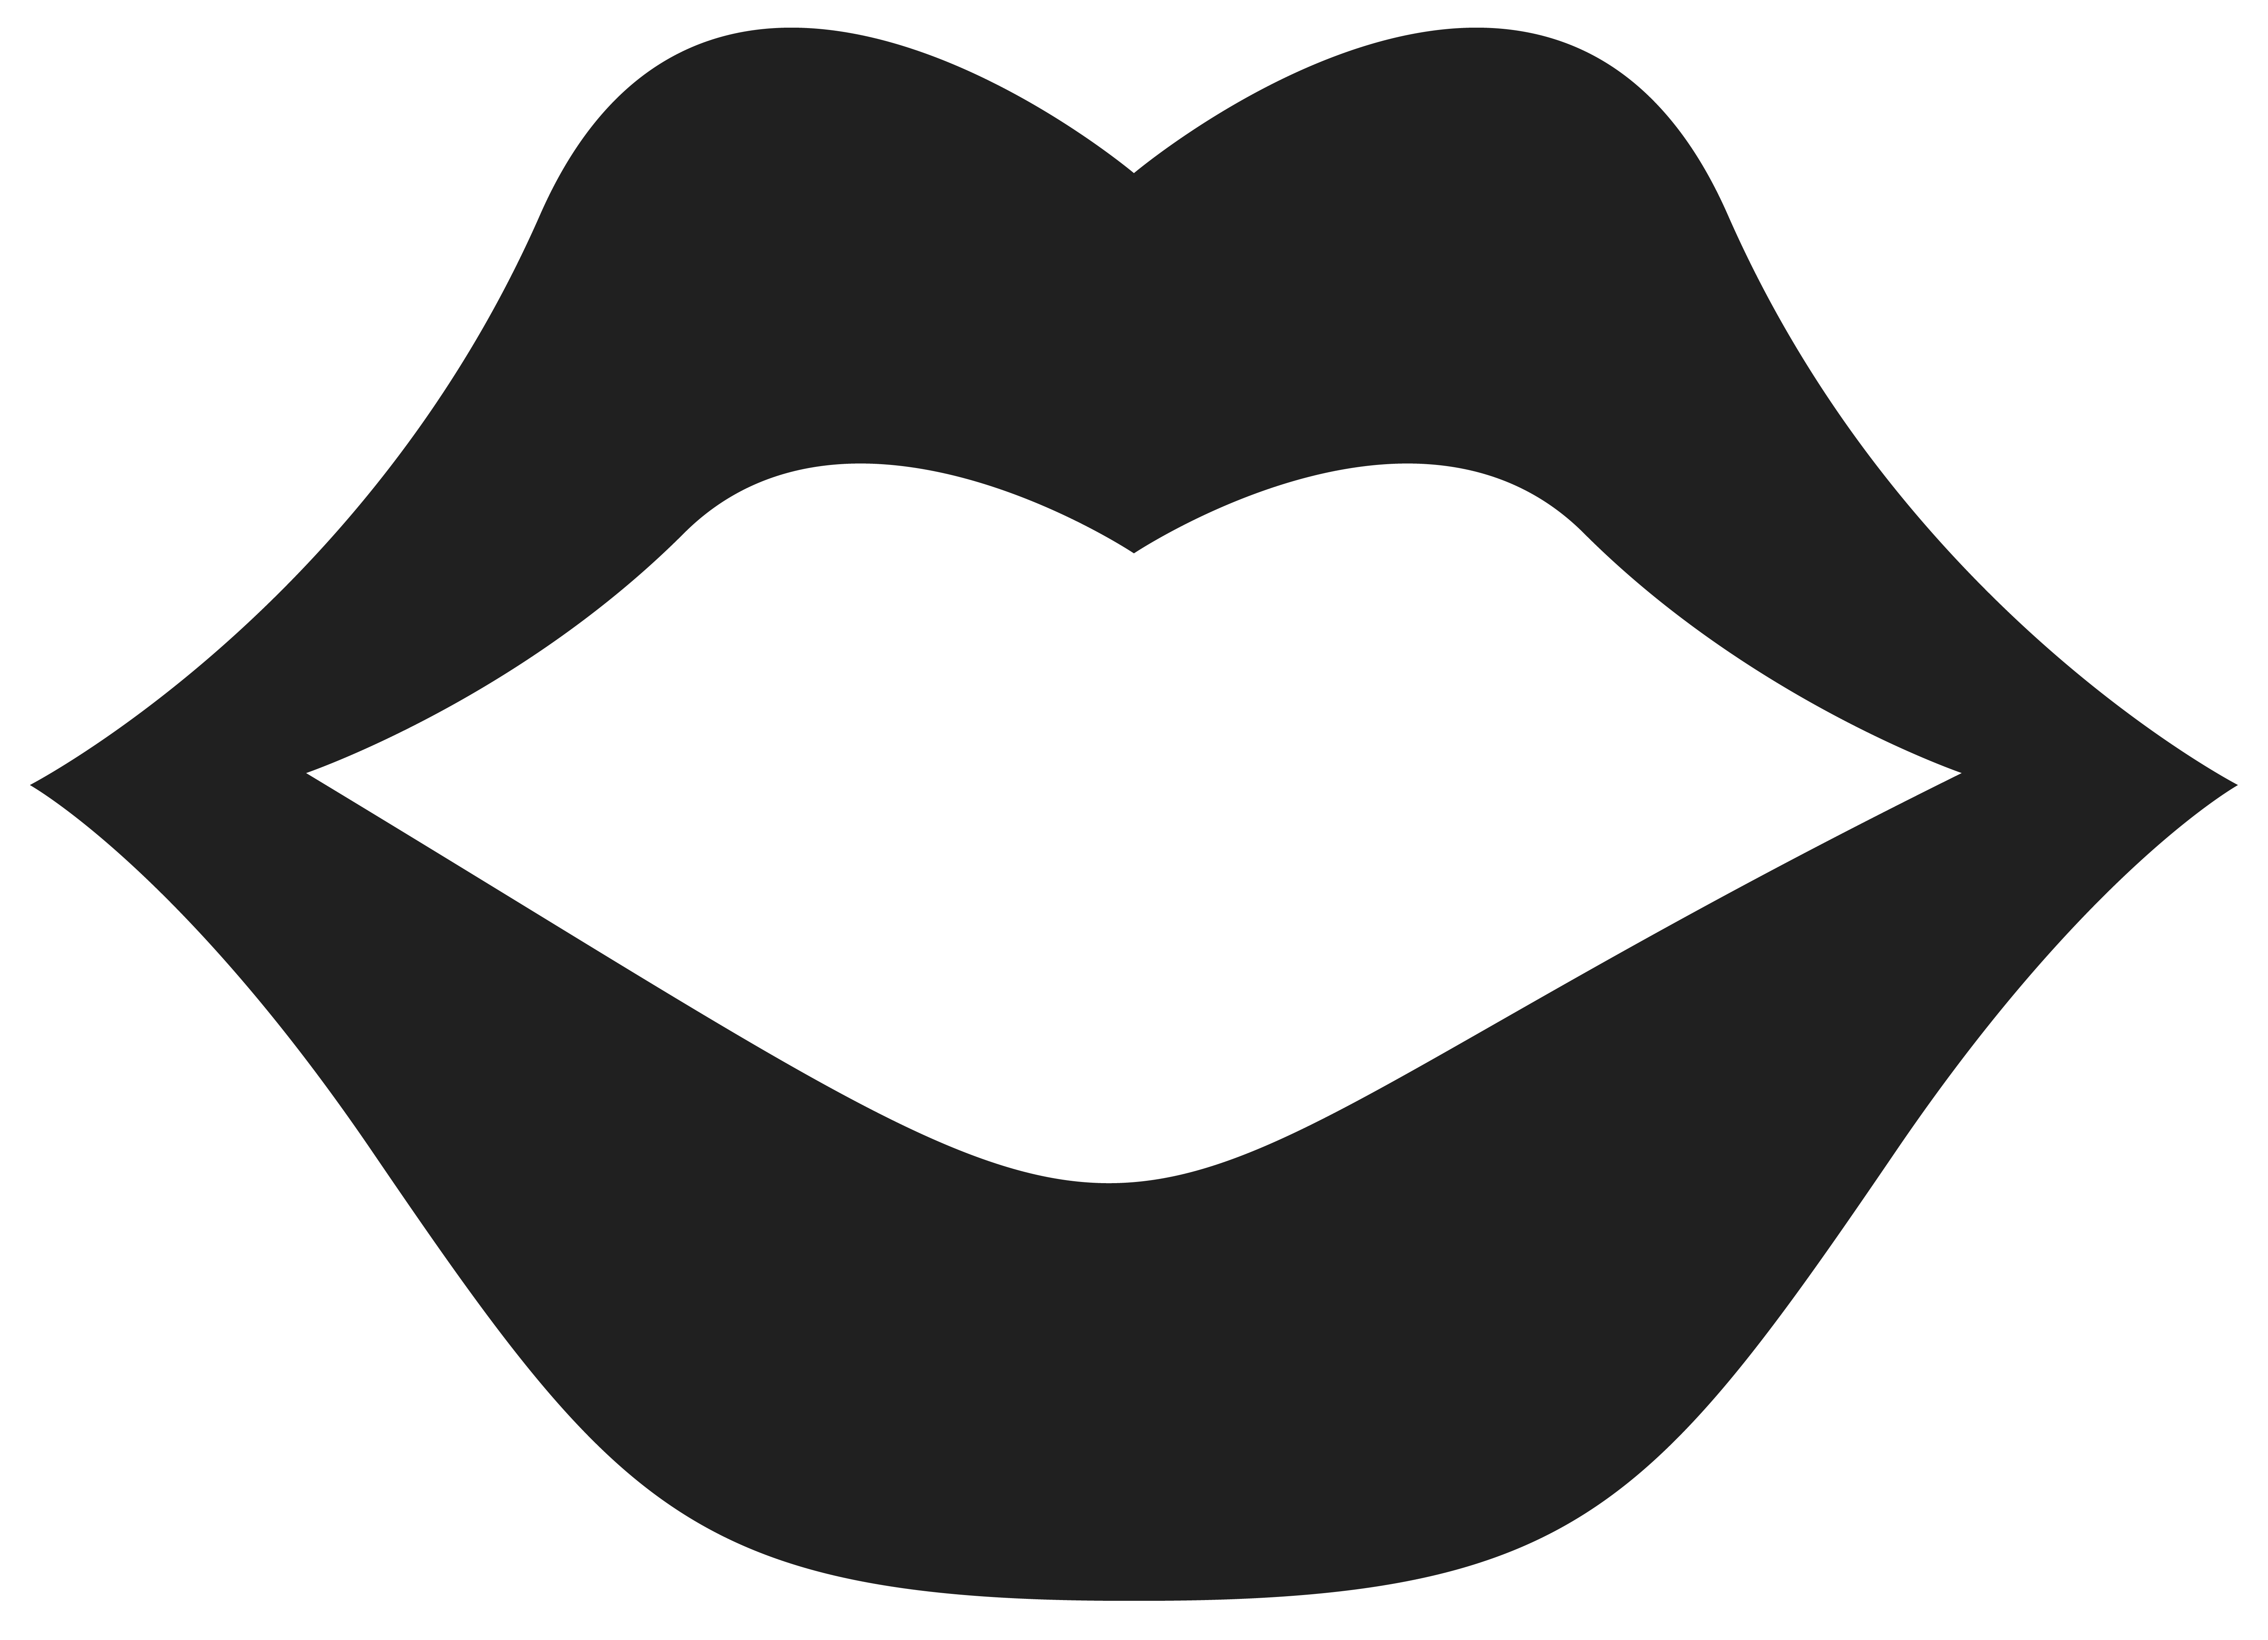 Lipstick clipart black and white. Movember mouth png picture